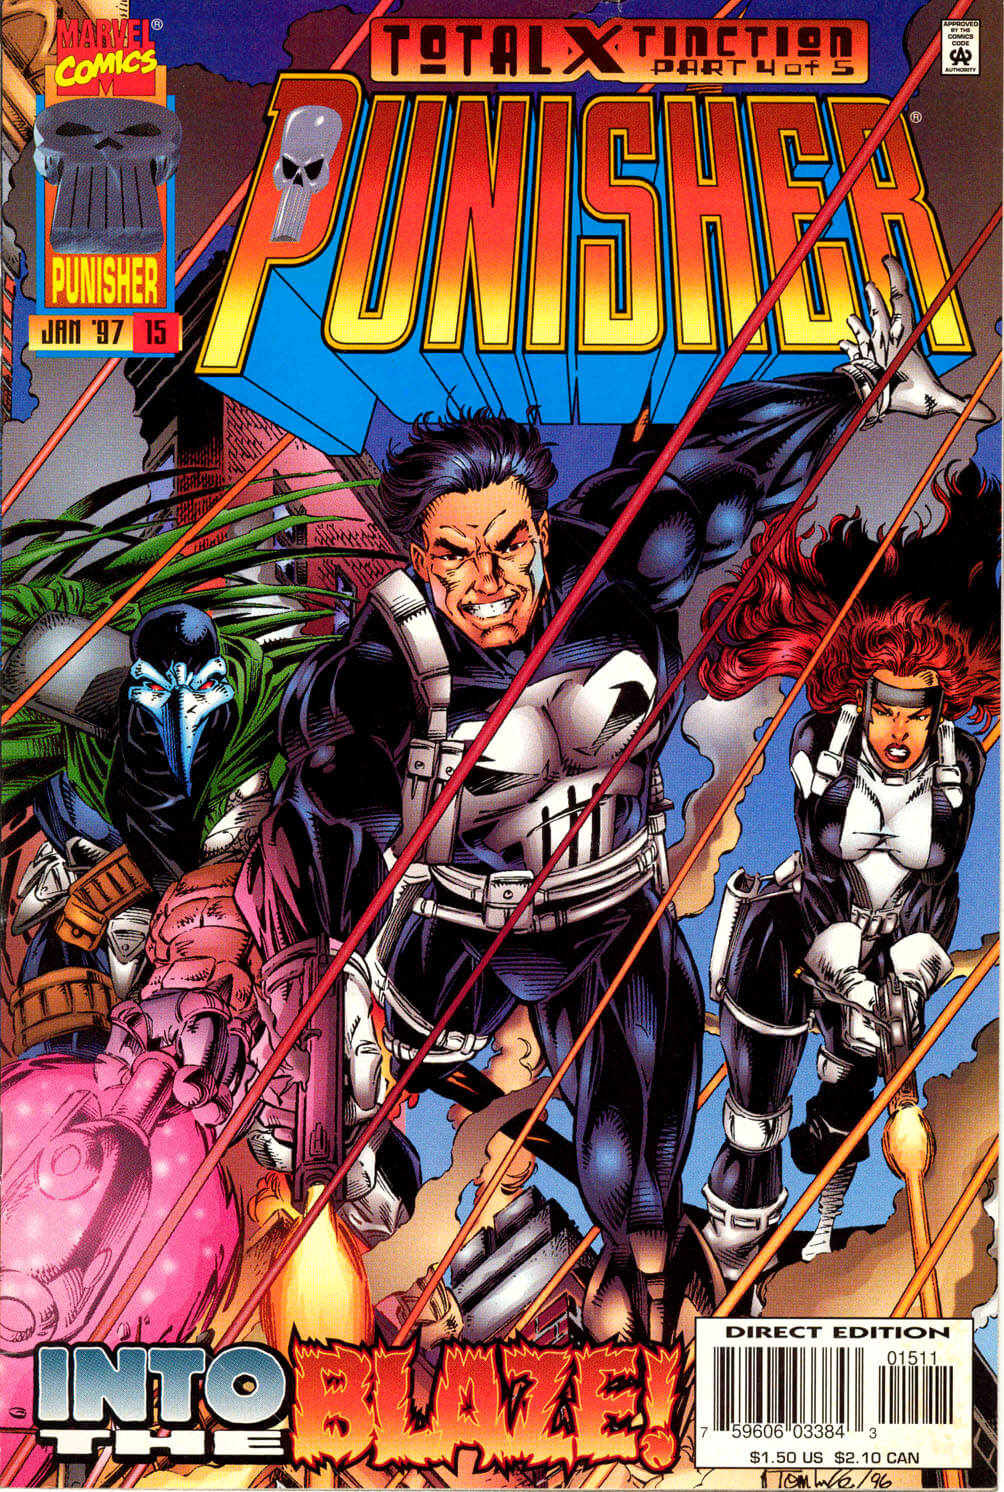 The Punisher Vol 3 #15